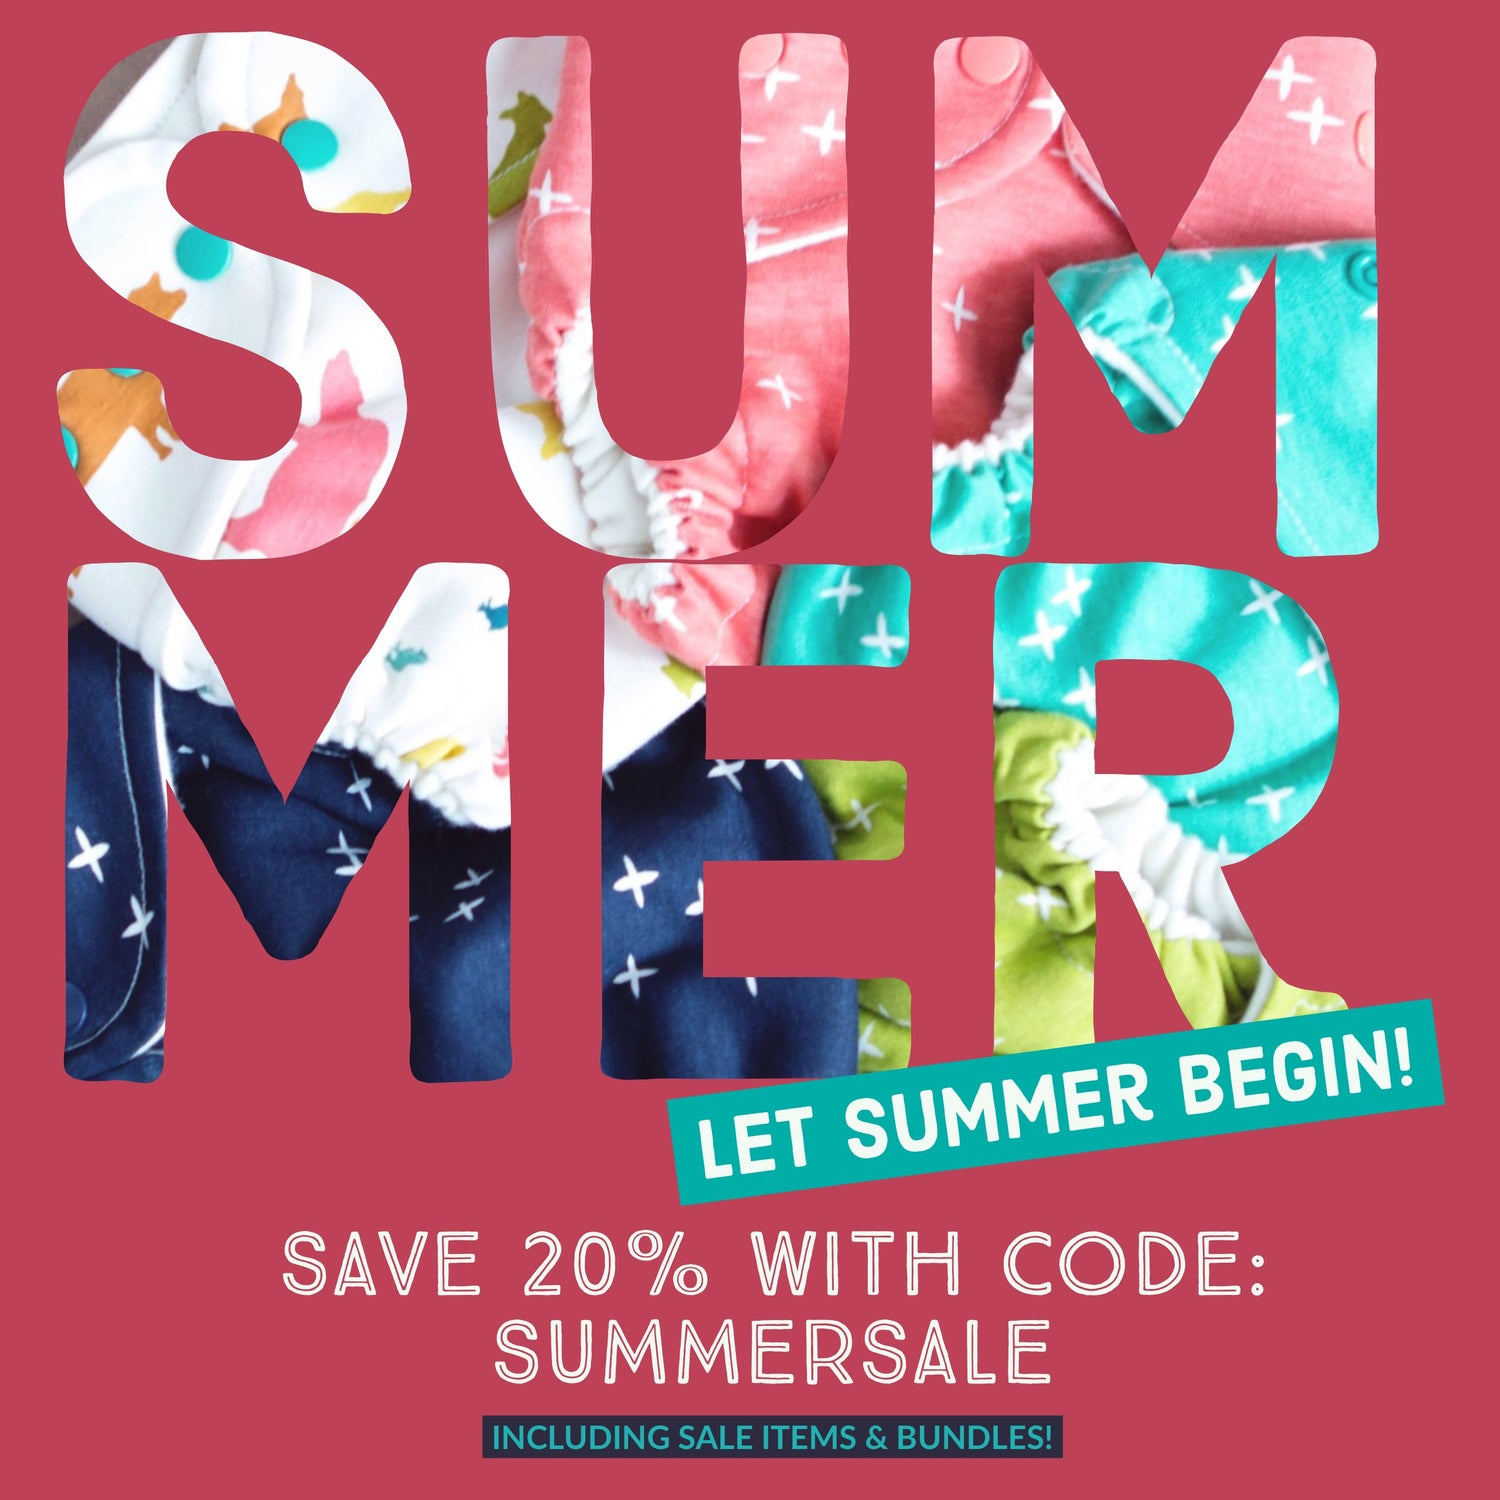 Summer sale 20% off with code